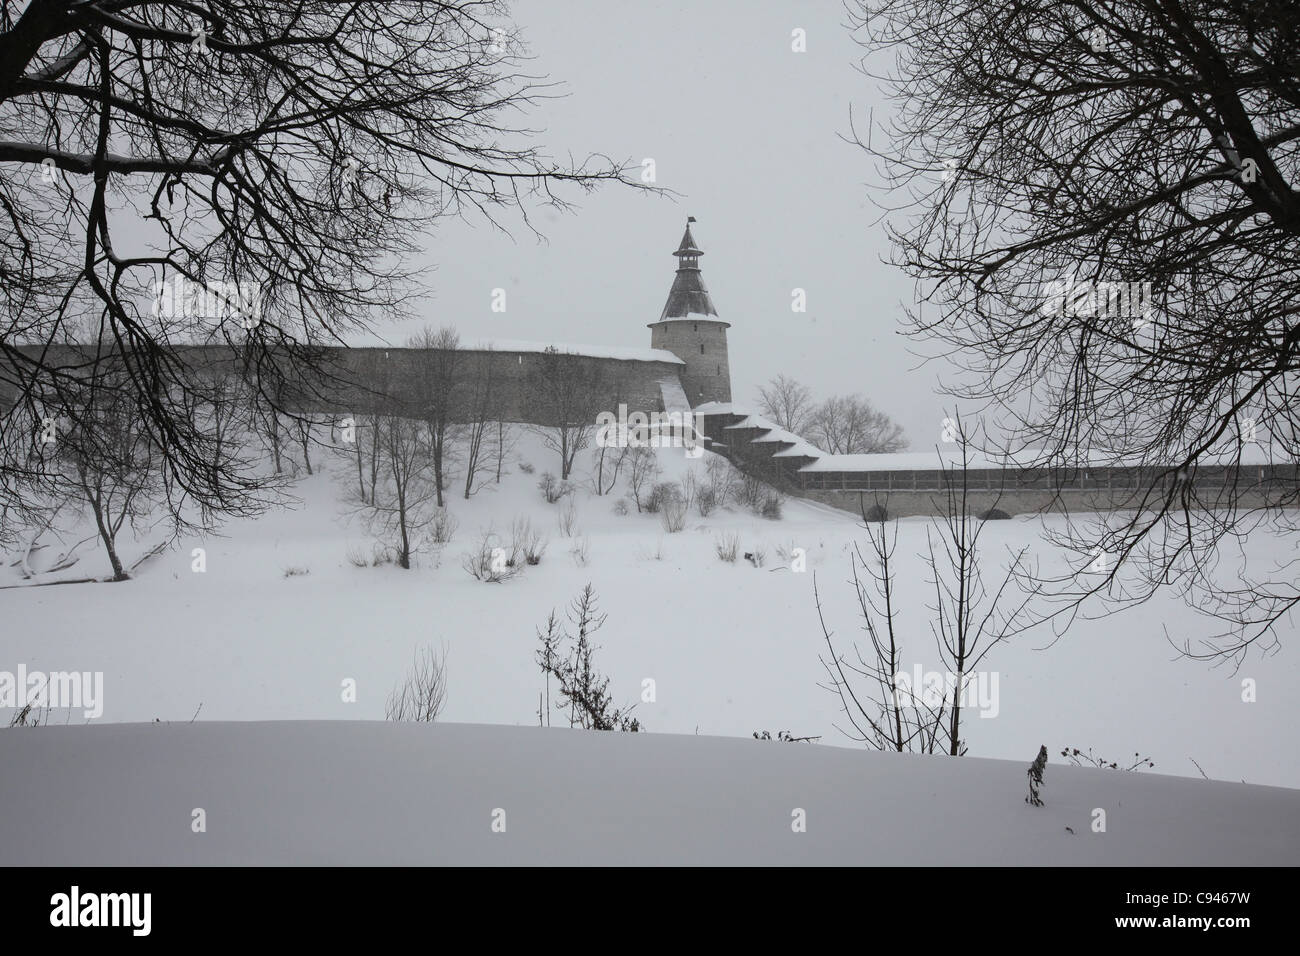 Kutekroma Tower of the Pskov Kremlin in Pskov, Russia. The Pskova River under ice is seen in the foreground. - Stock Image